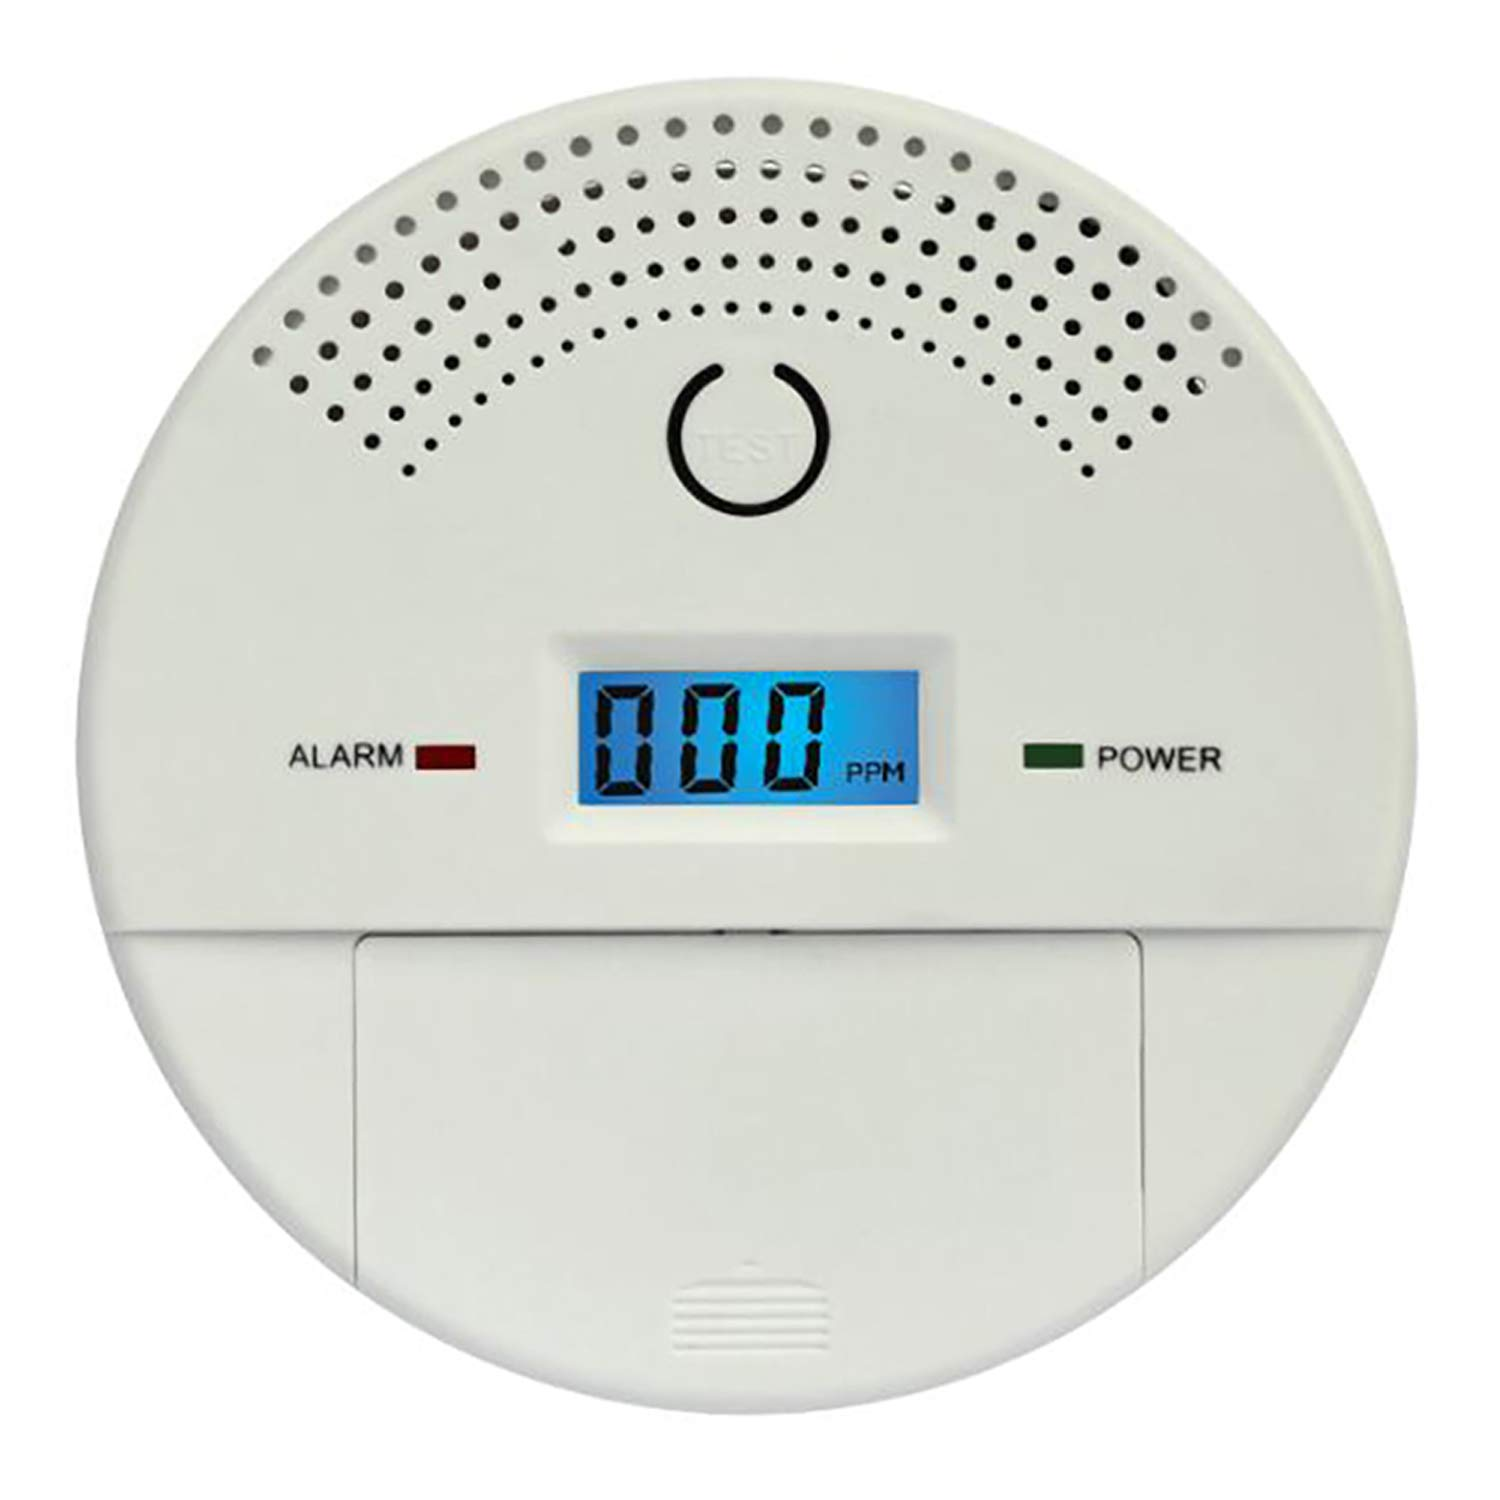 Combination Smoke Detector and Carbon Monoxide Alarm for Home, 9V Battery Operated Travel Portable Fire CO Alarm with Digital Display (1)